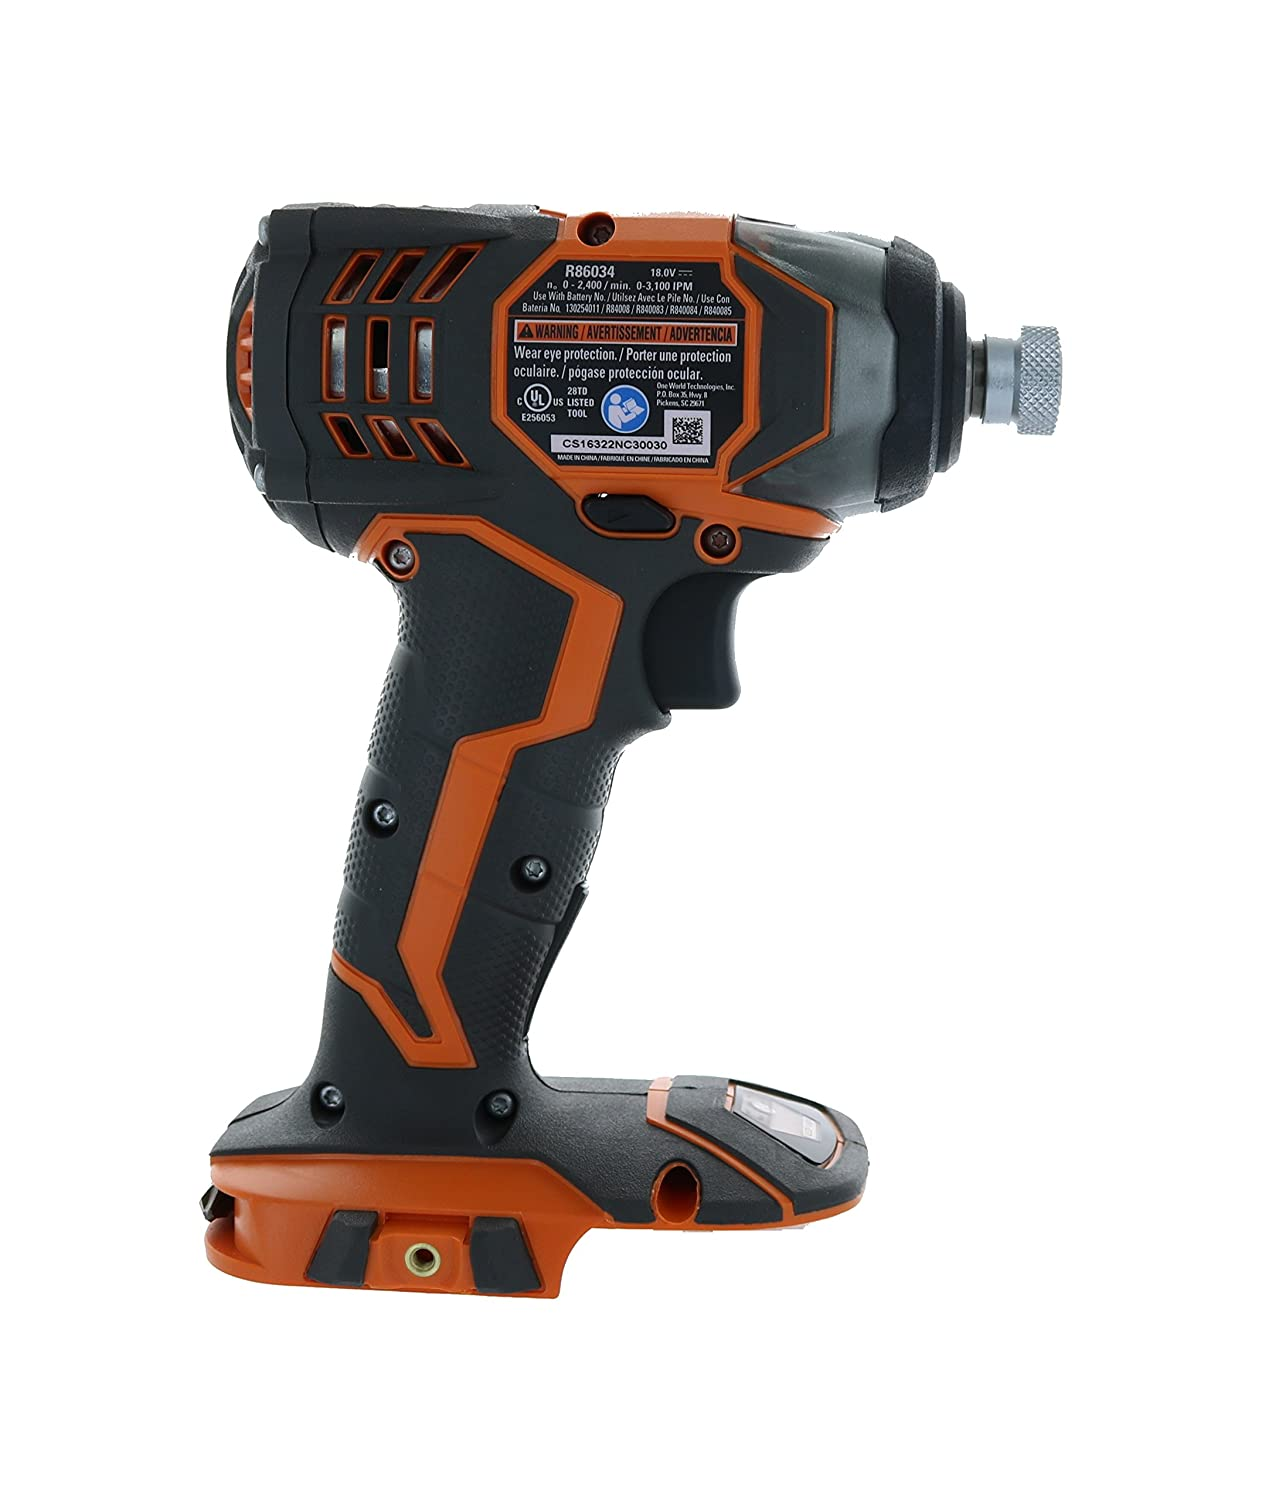 Ridgid R86034 X4 18V Lithium-Ion Impact Driver Forward Reverse Button